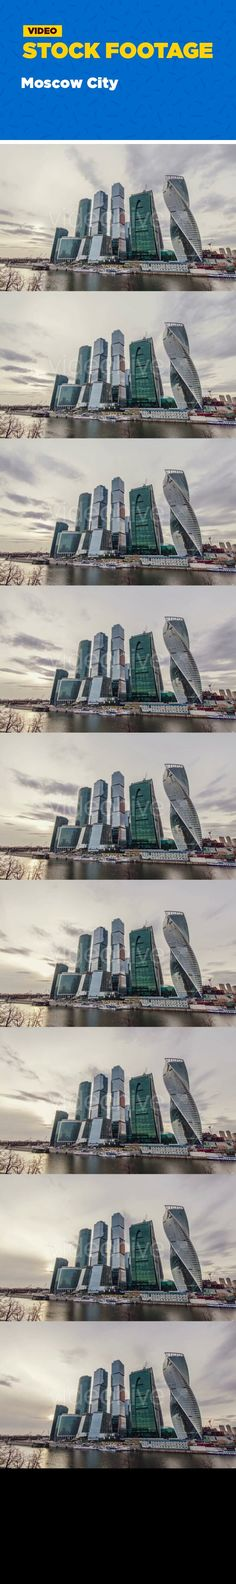 architecture, business, center, city, construction, futuristic, modern, moscow, new, office, russia, skyscraper, tower, urban, view Business Center Moscow City, time-lapse clouds flying over skyscrapers of glass and concrete